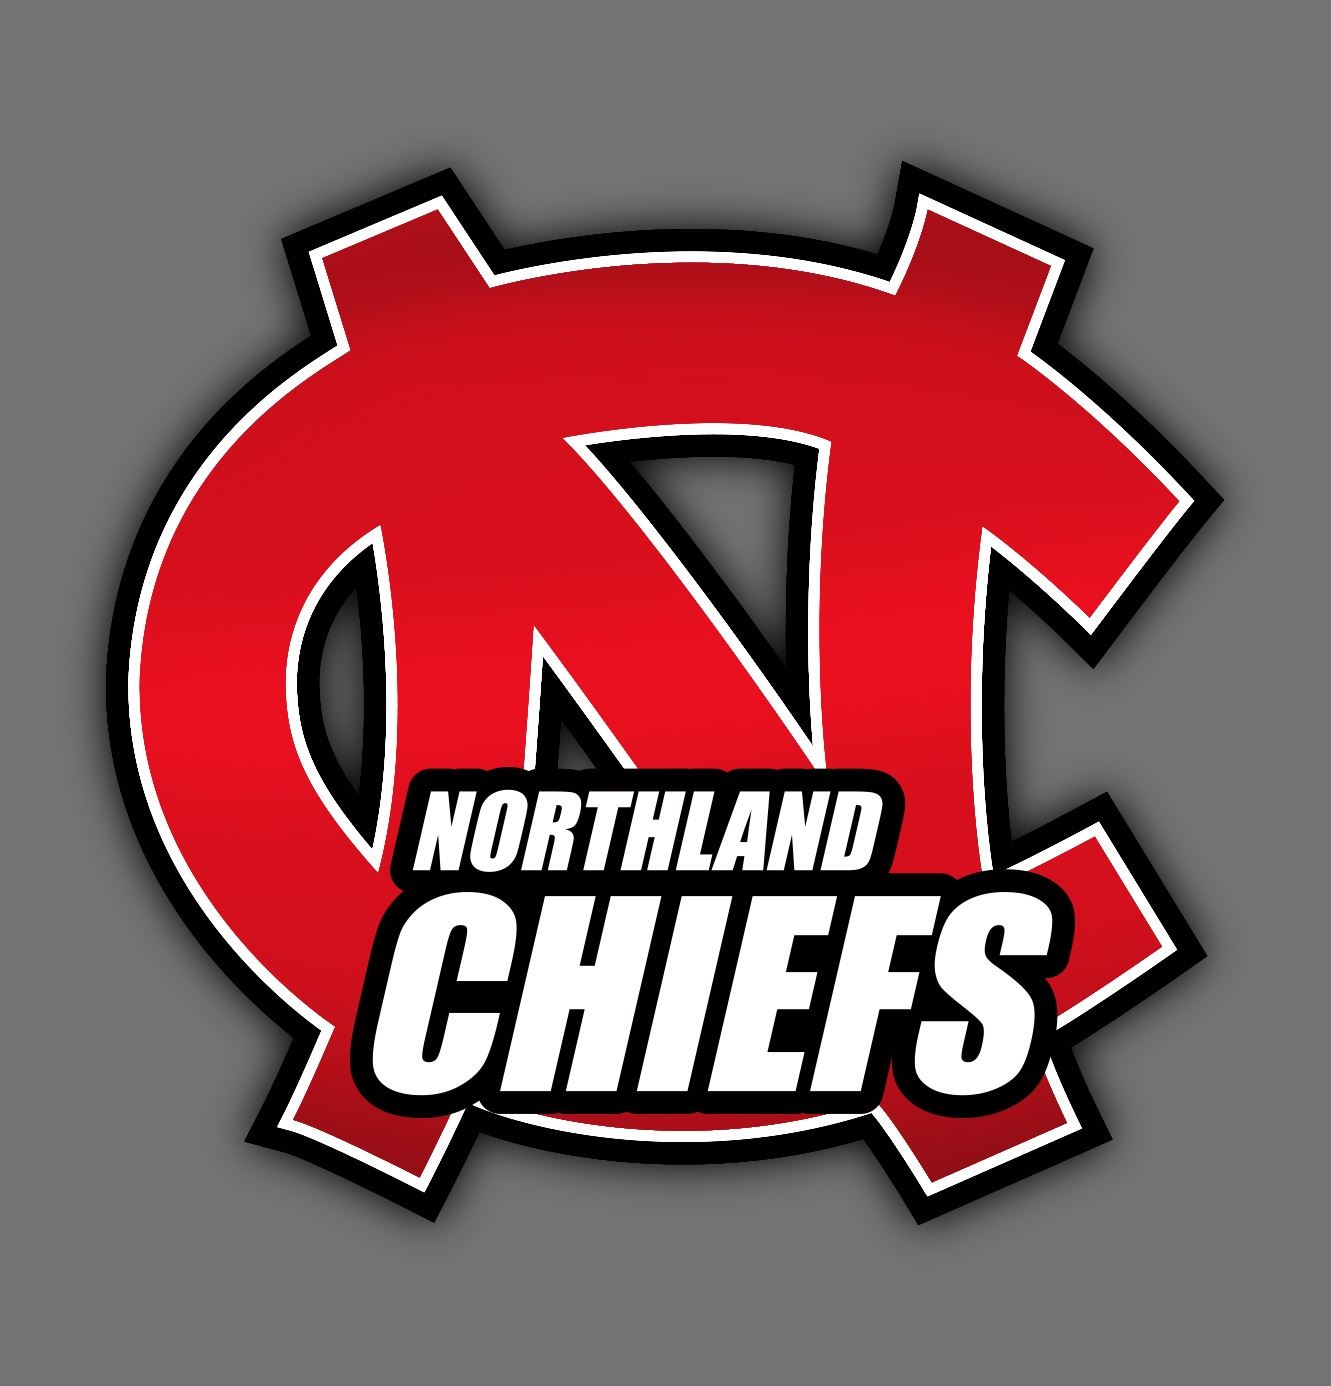 CUSHMO DESIGNS - Northland Chiefs 4th